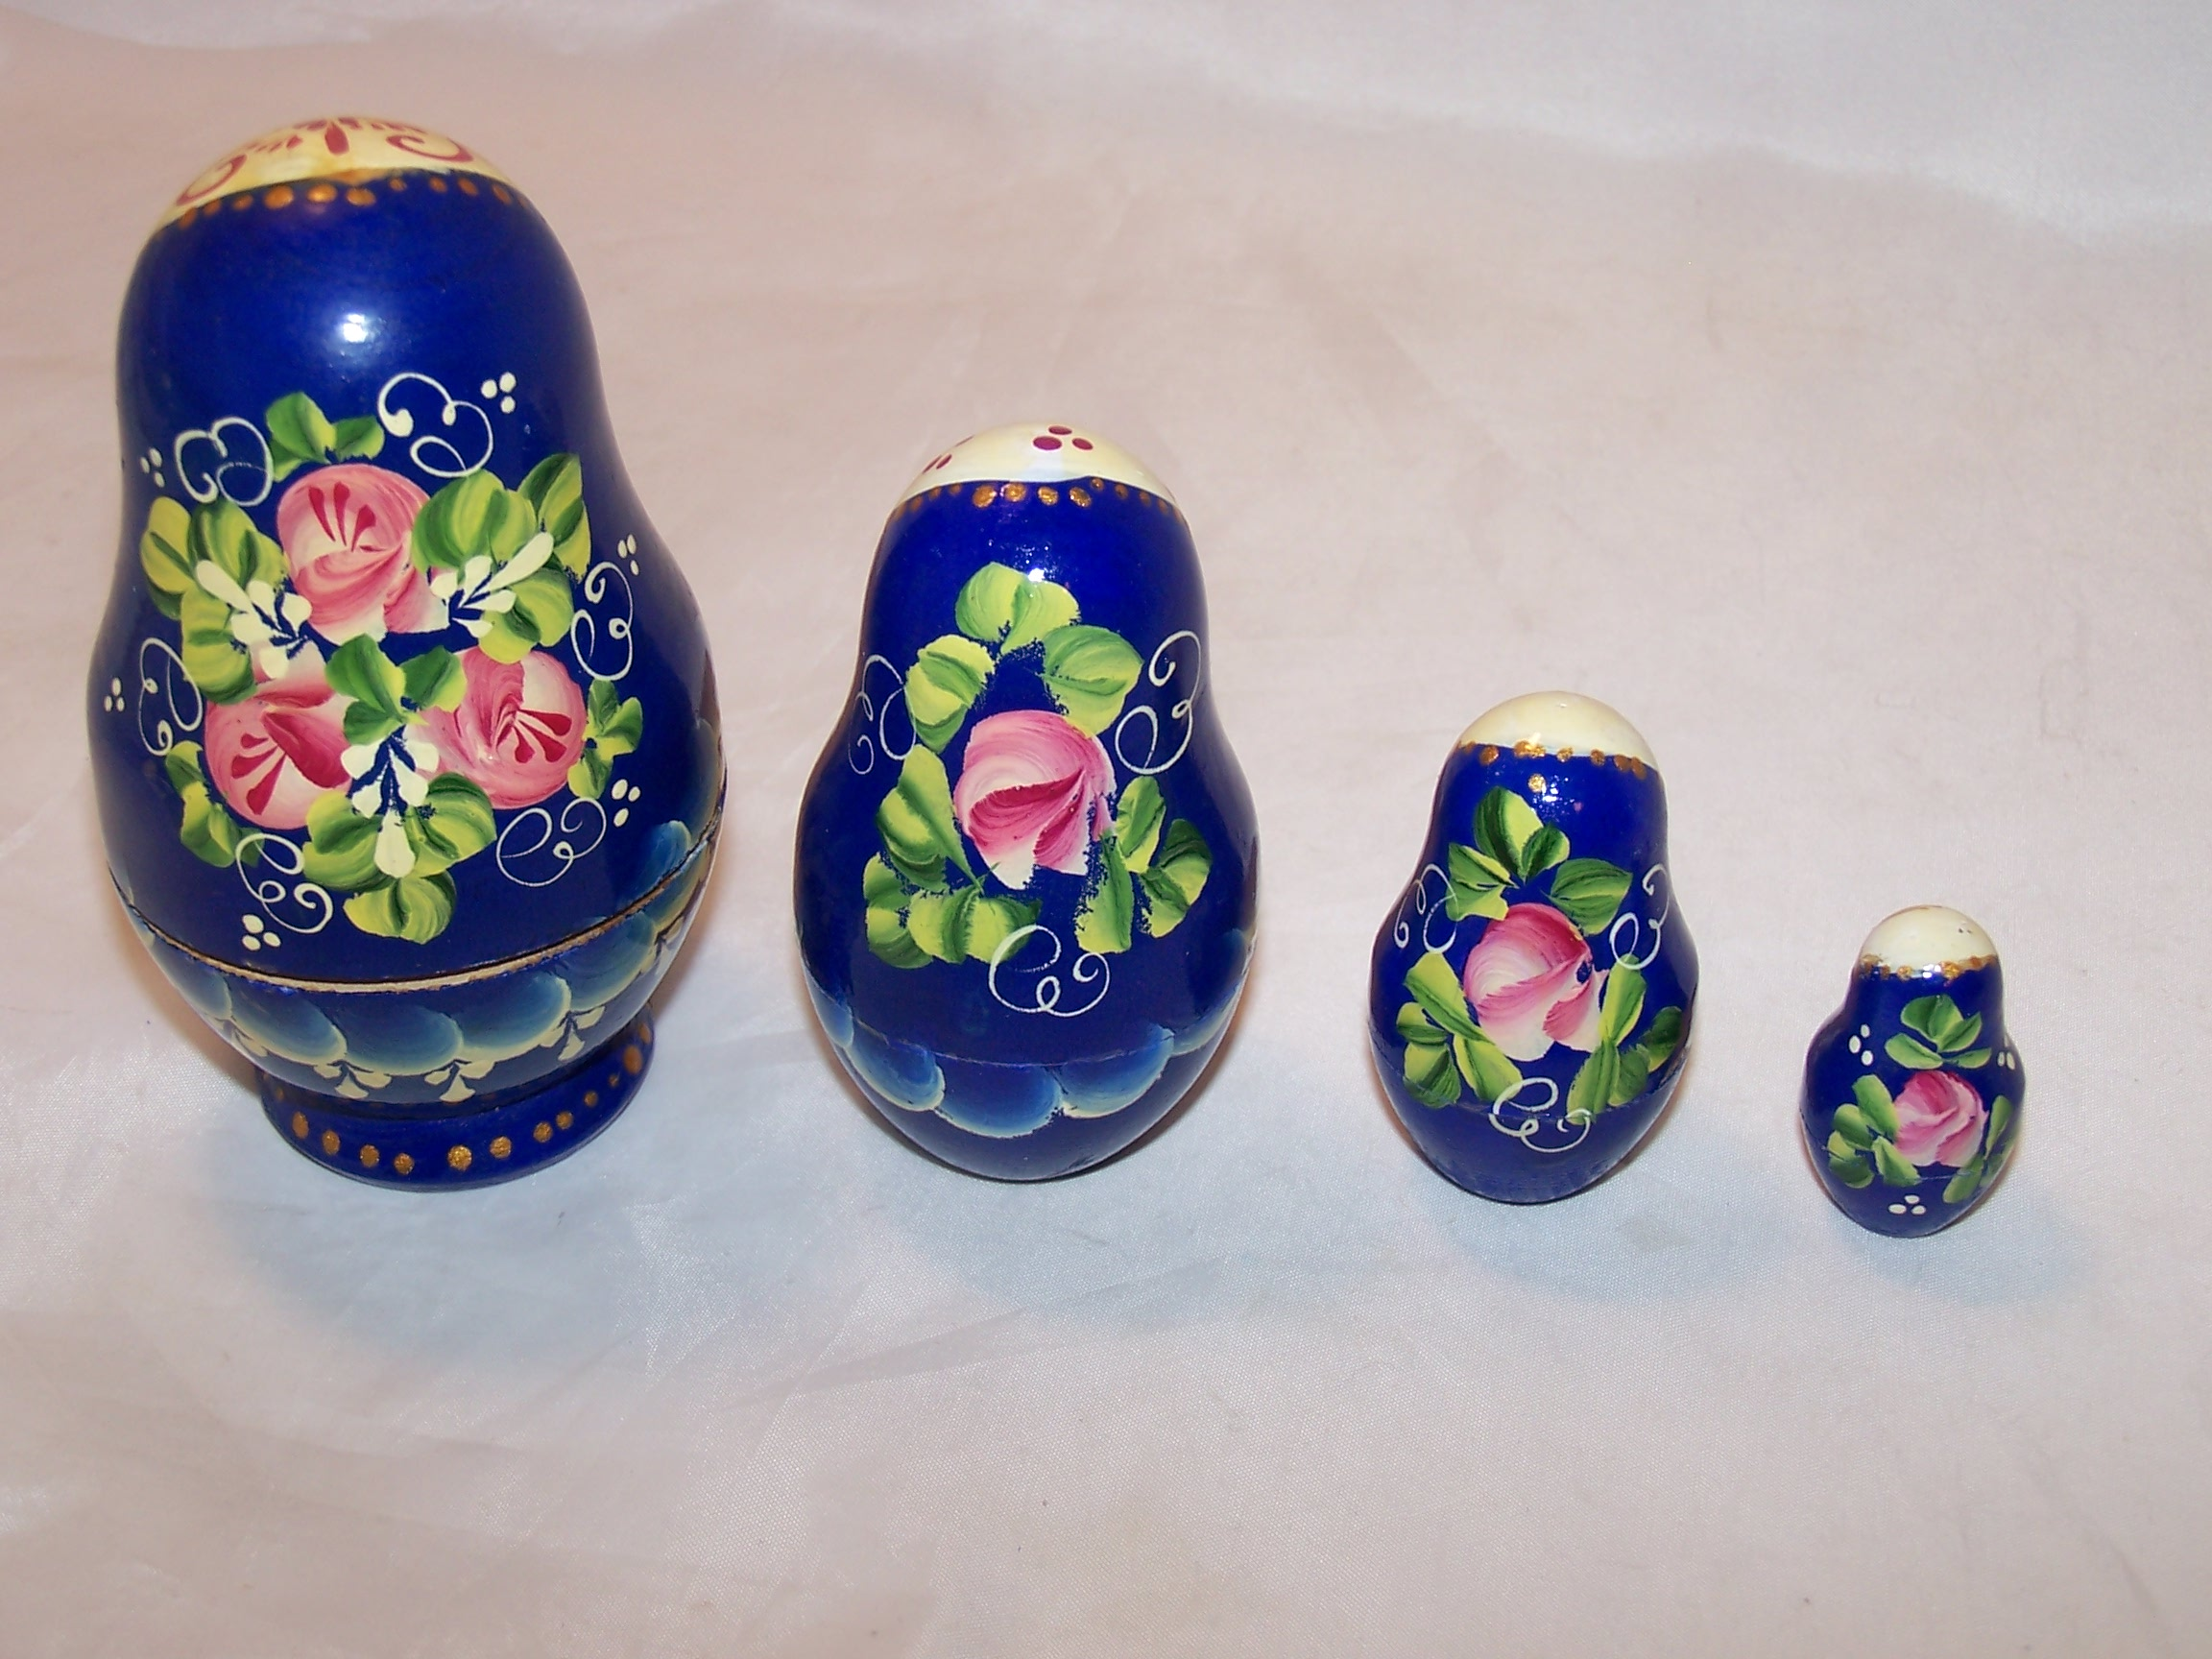 Image 1 of Nesting Doll in Blue with Flowers, 4 Levels, Wood